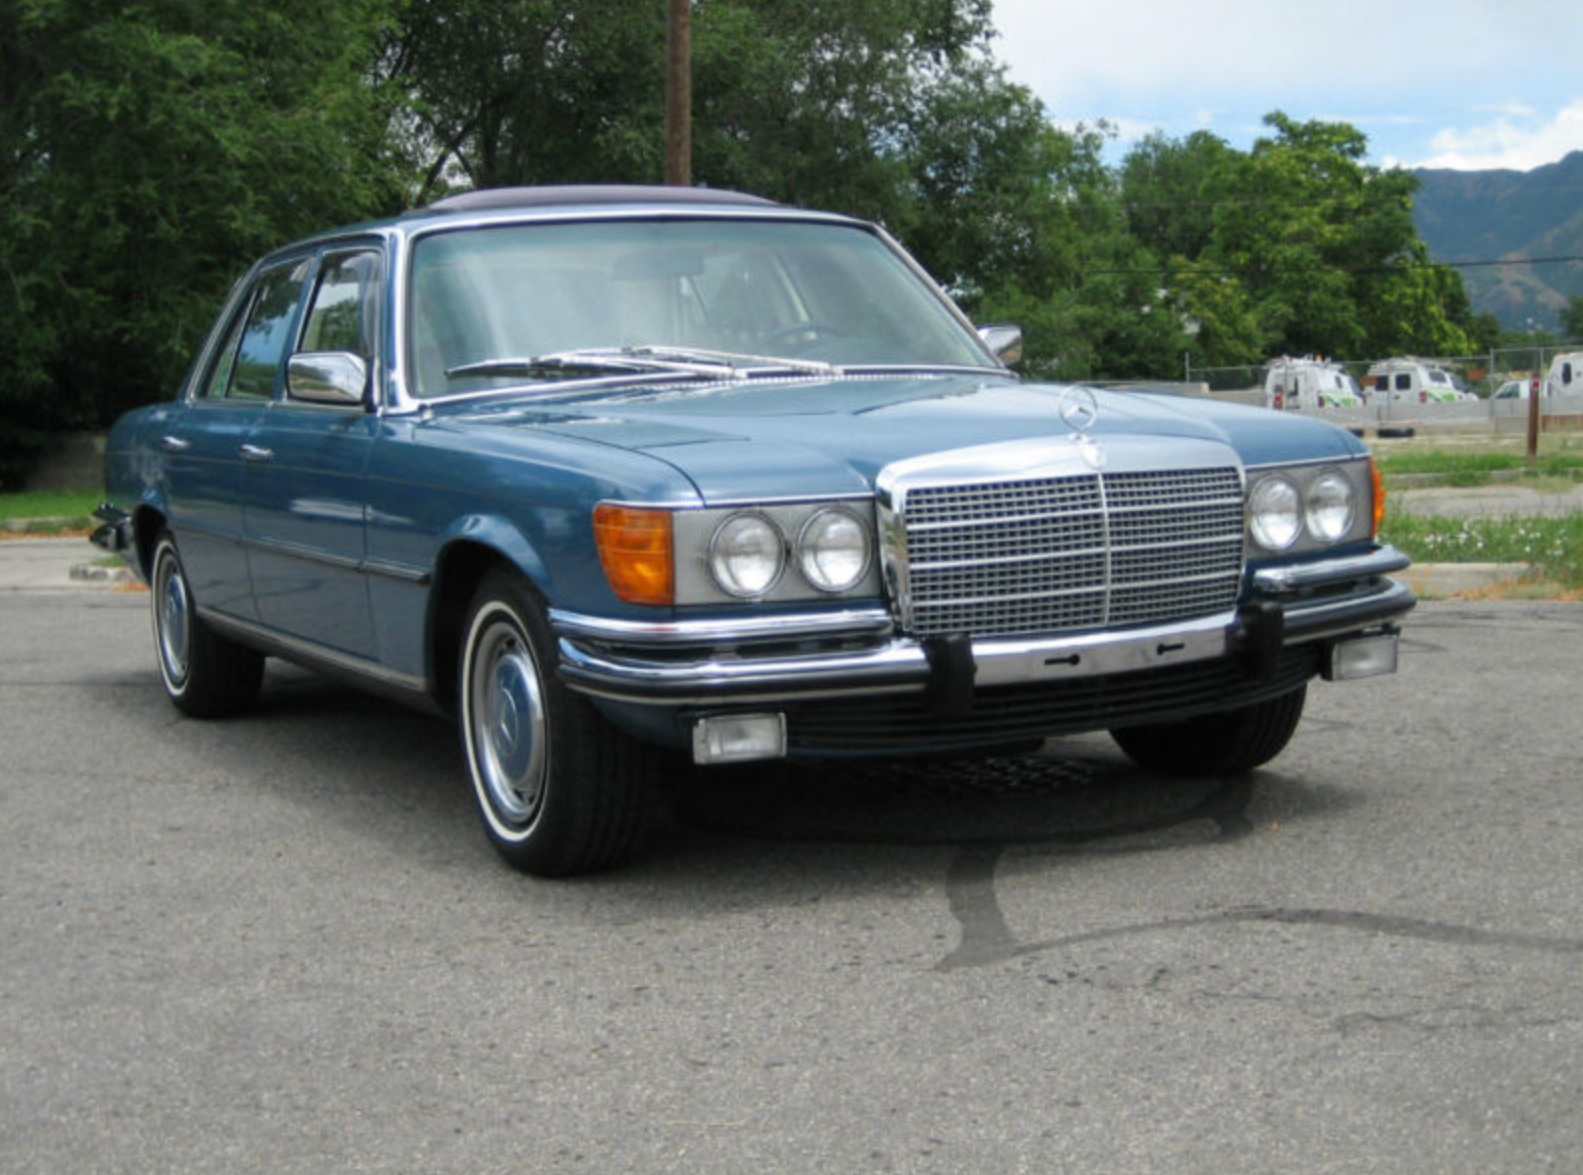 Mercedes-benz 450se photo - 5